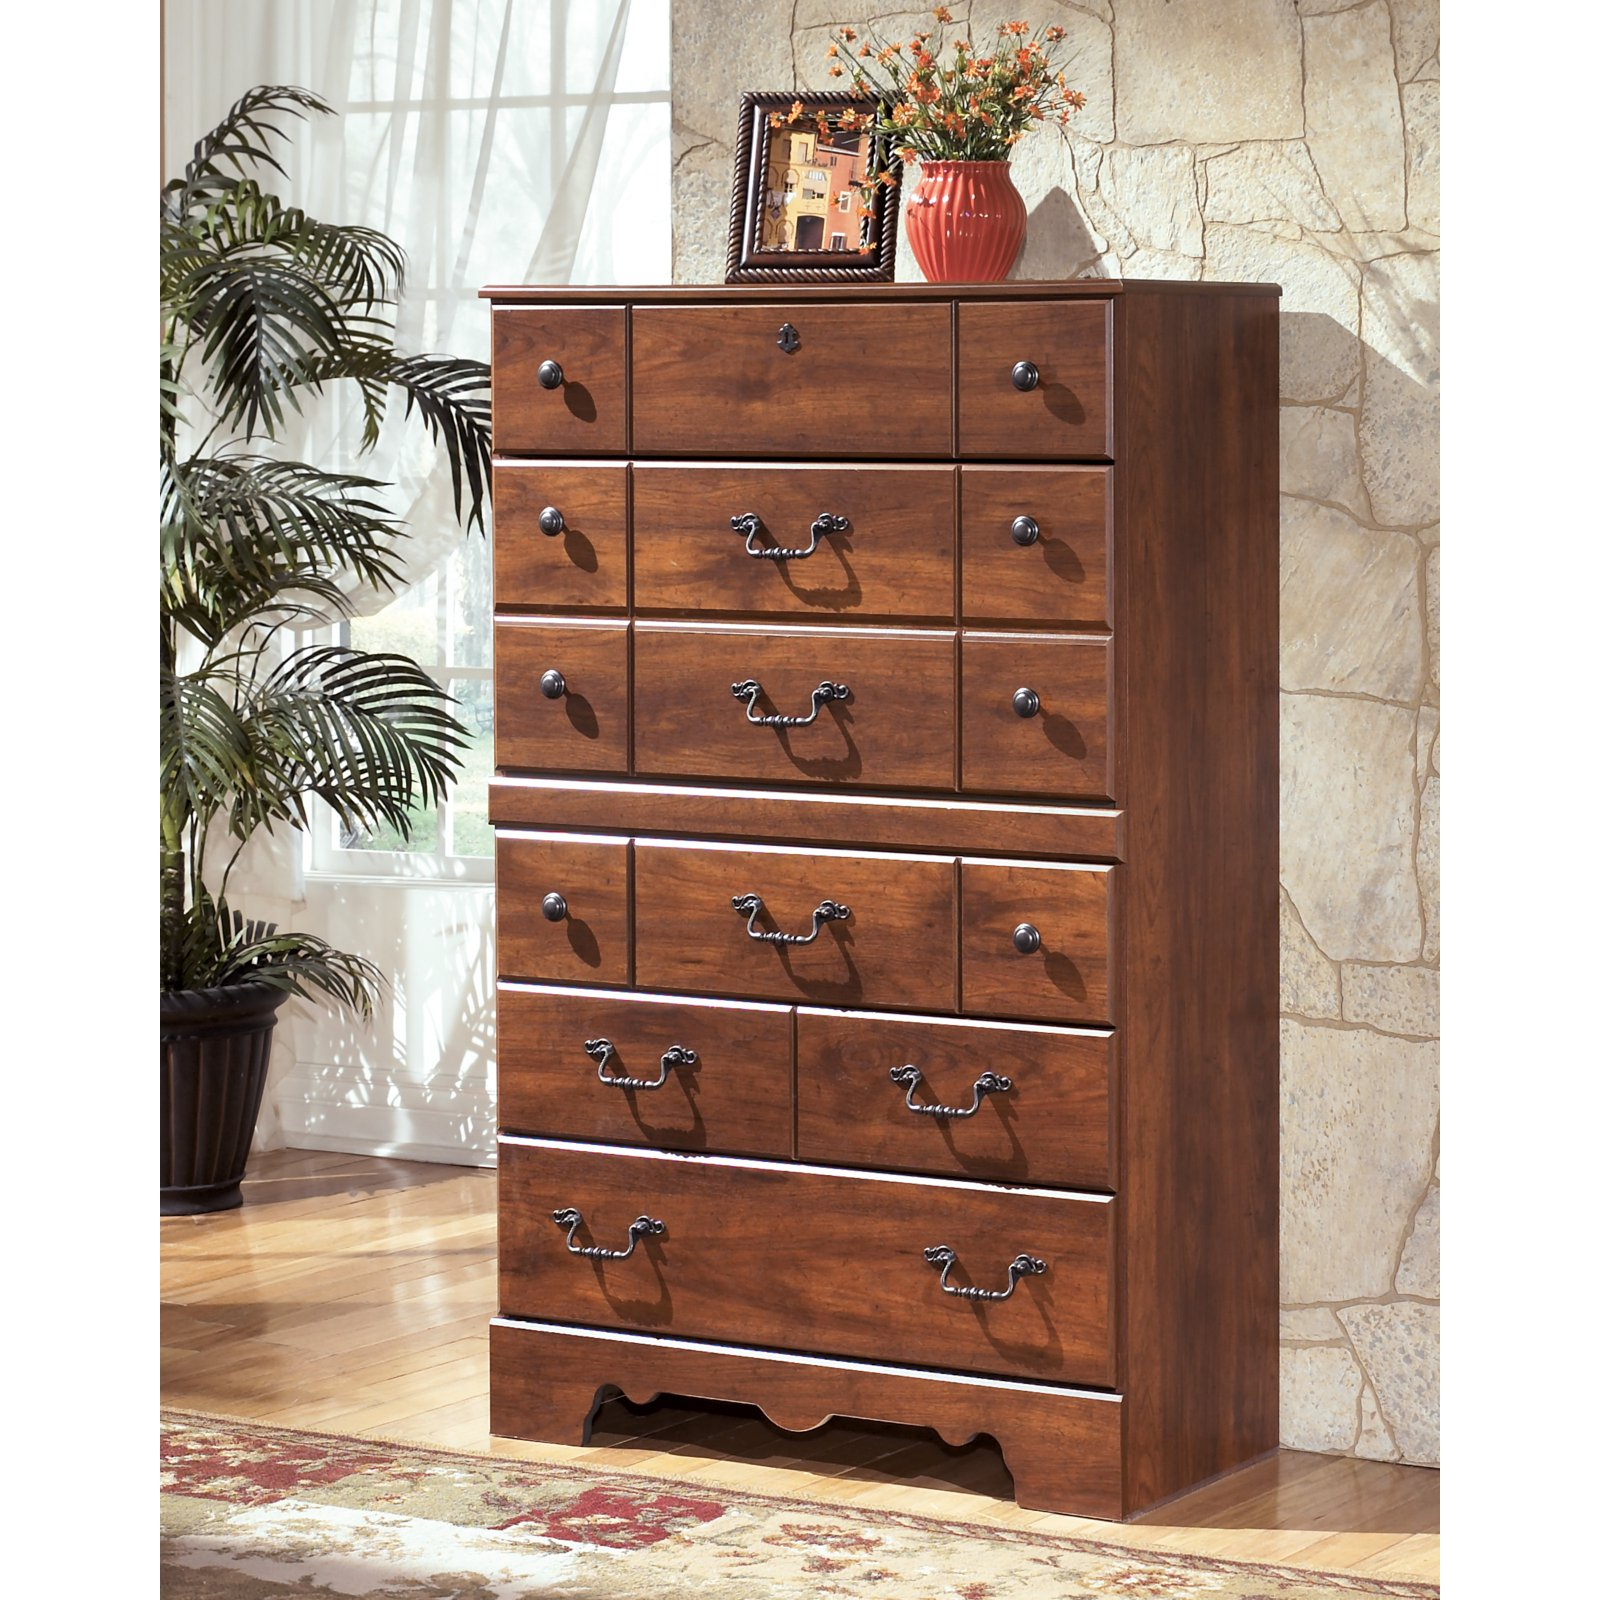 Signature Design by Ashley Timberline 5 Drawer Chest